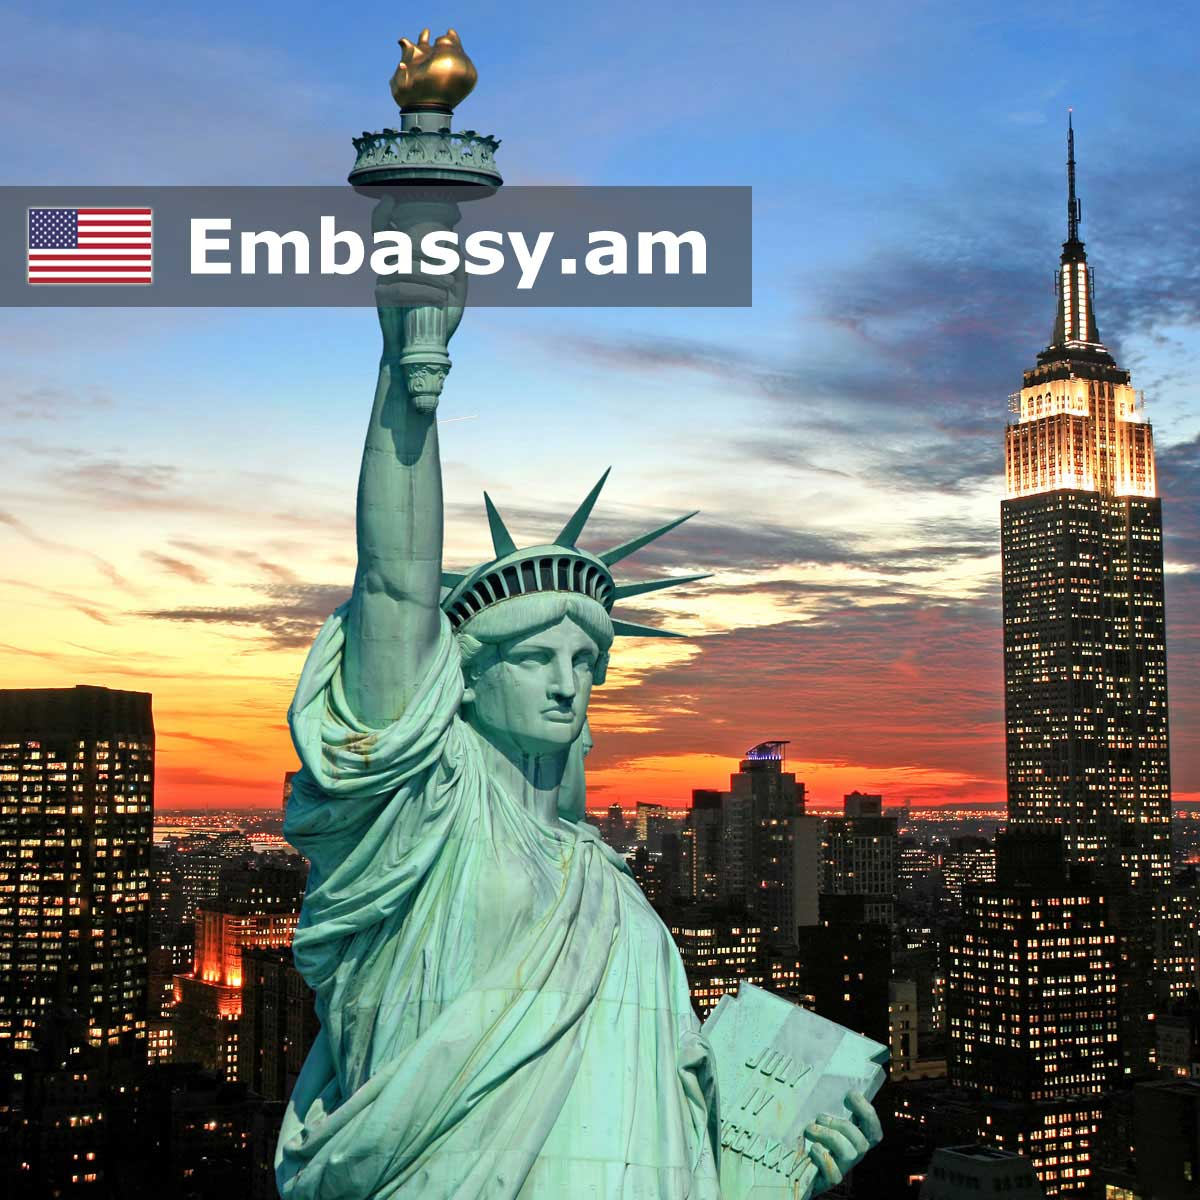 Hotels in USA - Embassy.am